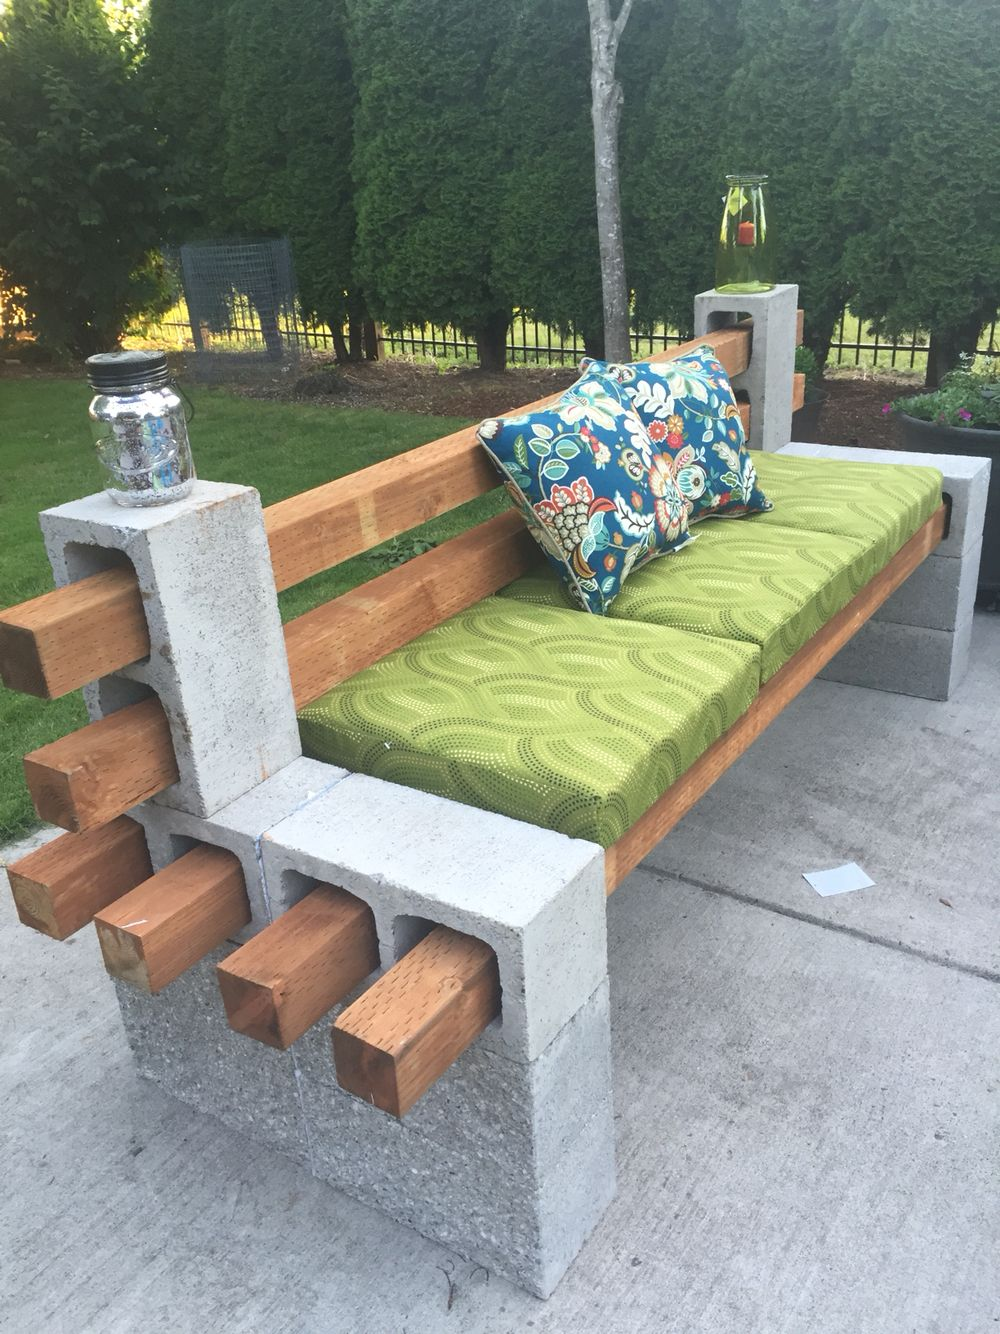 Diy patio furniture cinder blocks - 13 Diy Patio Furniture Ideas That Are Simple And Cheap Page 2 Of 14 Cinder Block